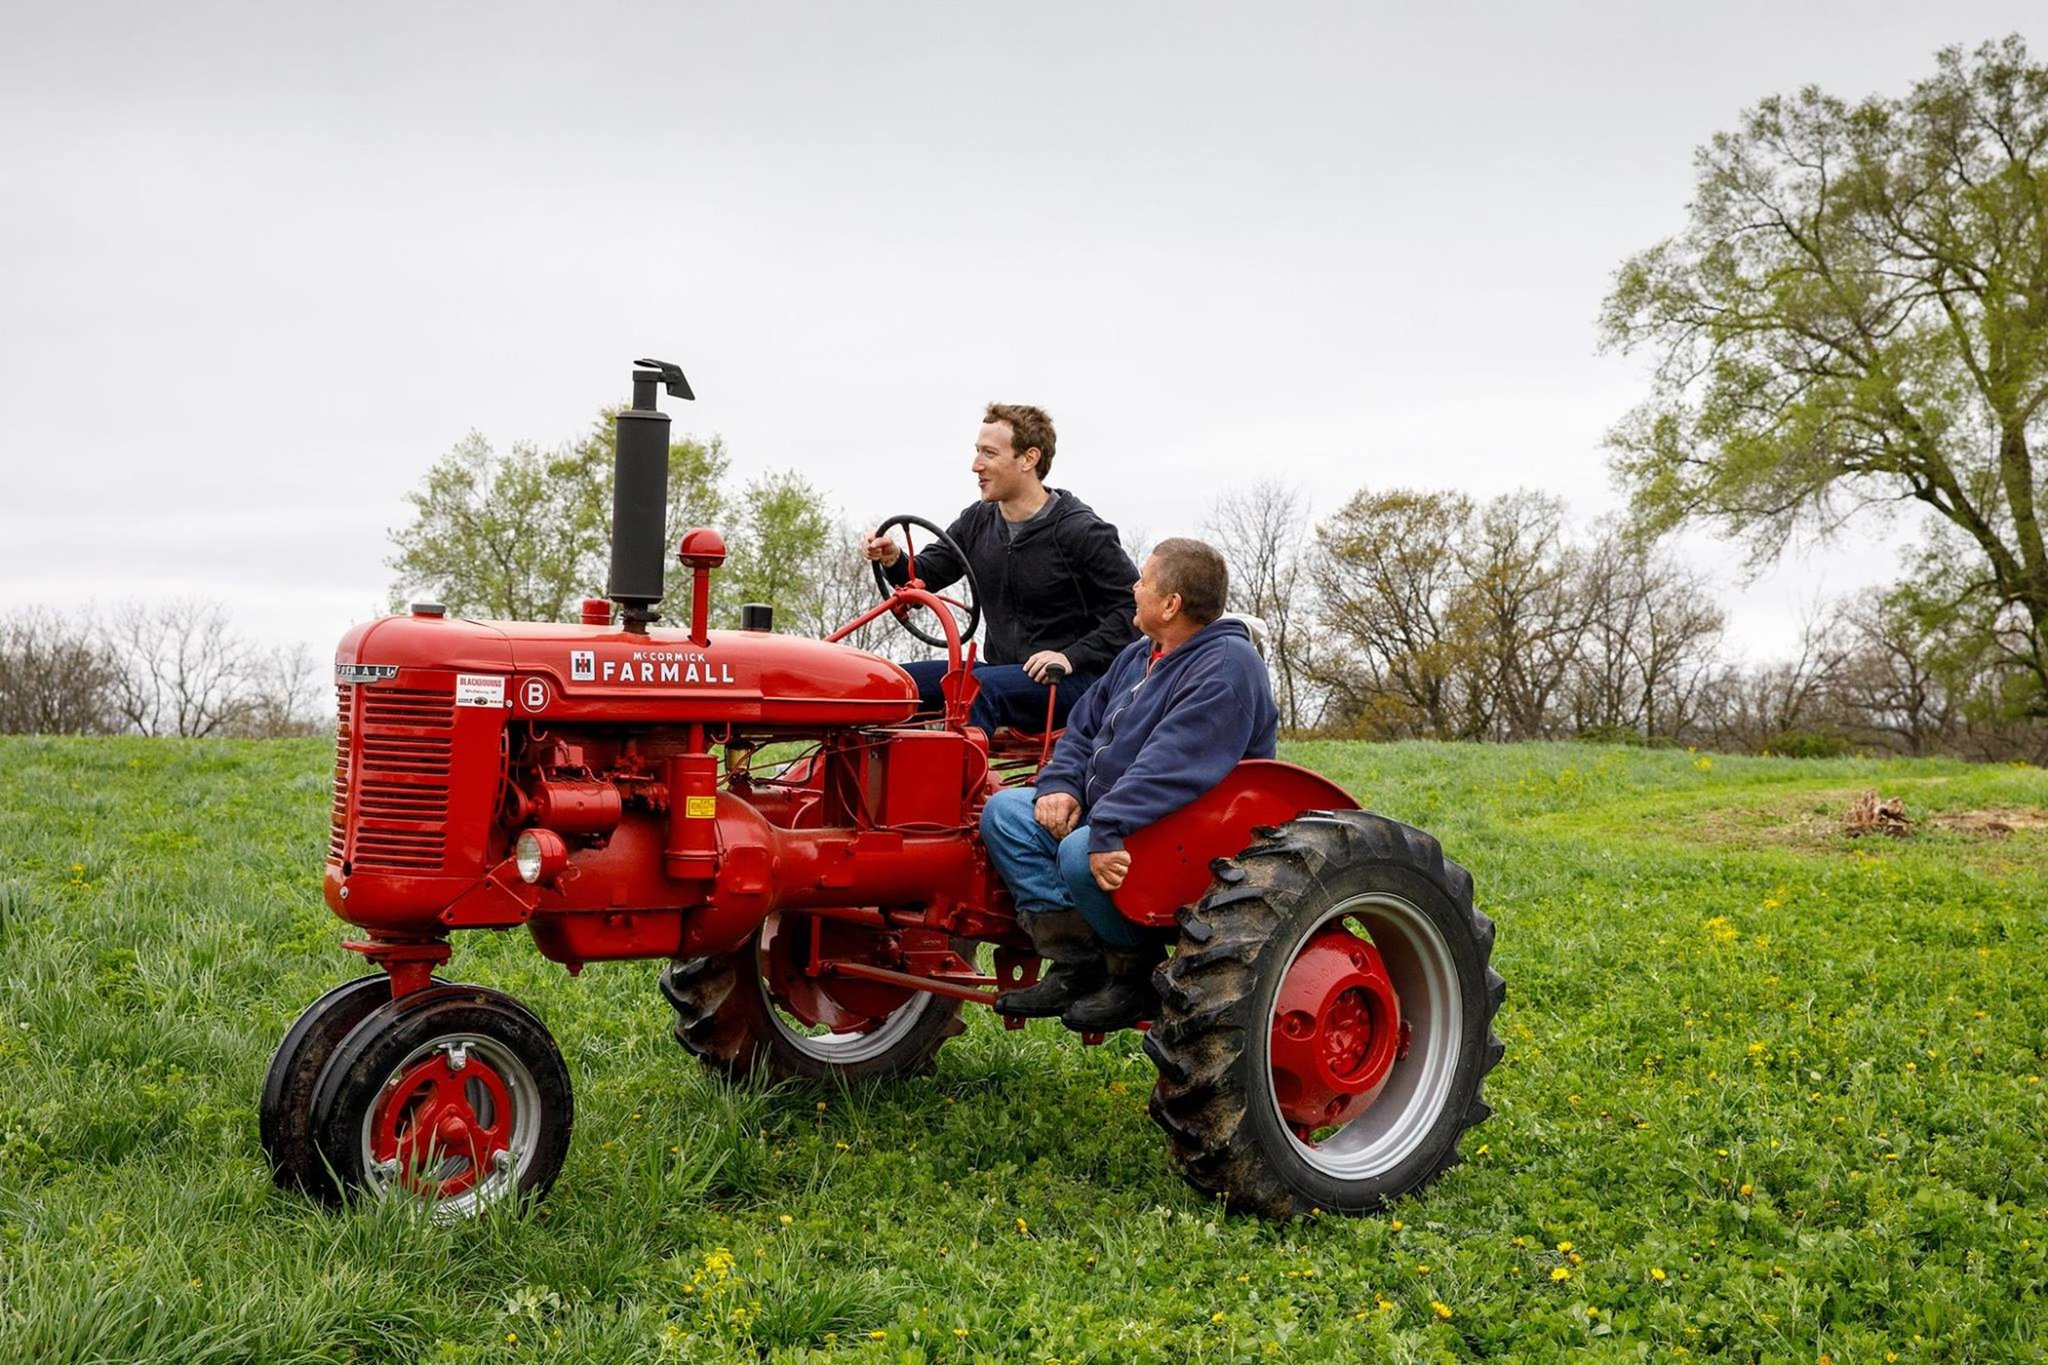 Facebook CEO Mark Zuckerberg drives a tractor on his tour of America.